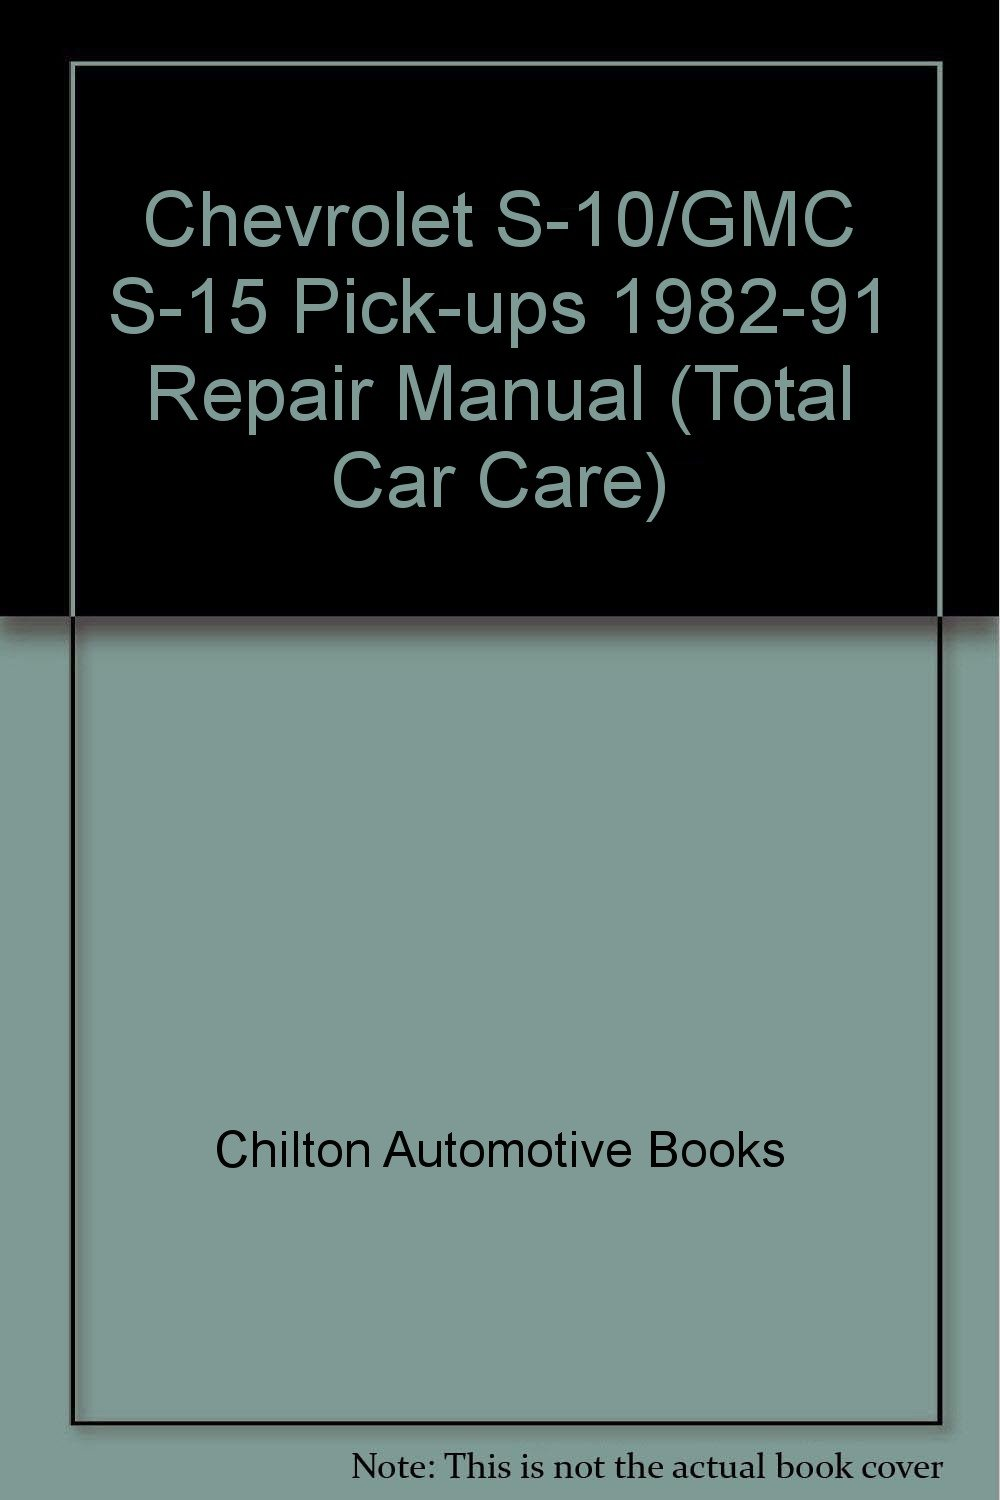 Chilton's Chevrolet Chevy S10/GMC S15 Pickups 1982-91 Repair Manual:  Chilton Automotive Books: 9780801981418: Amazon.com: Books